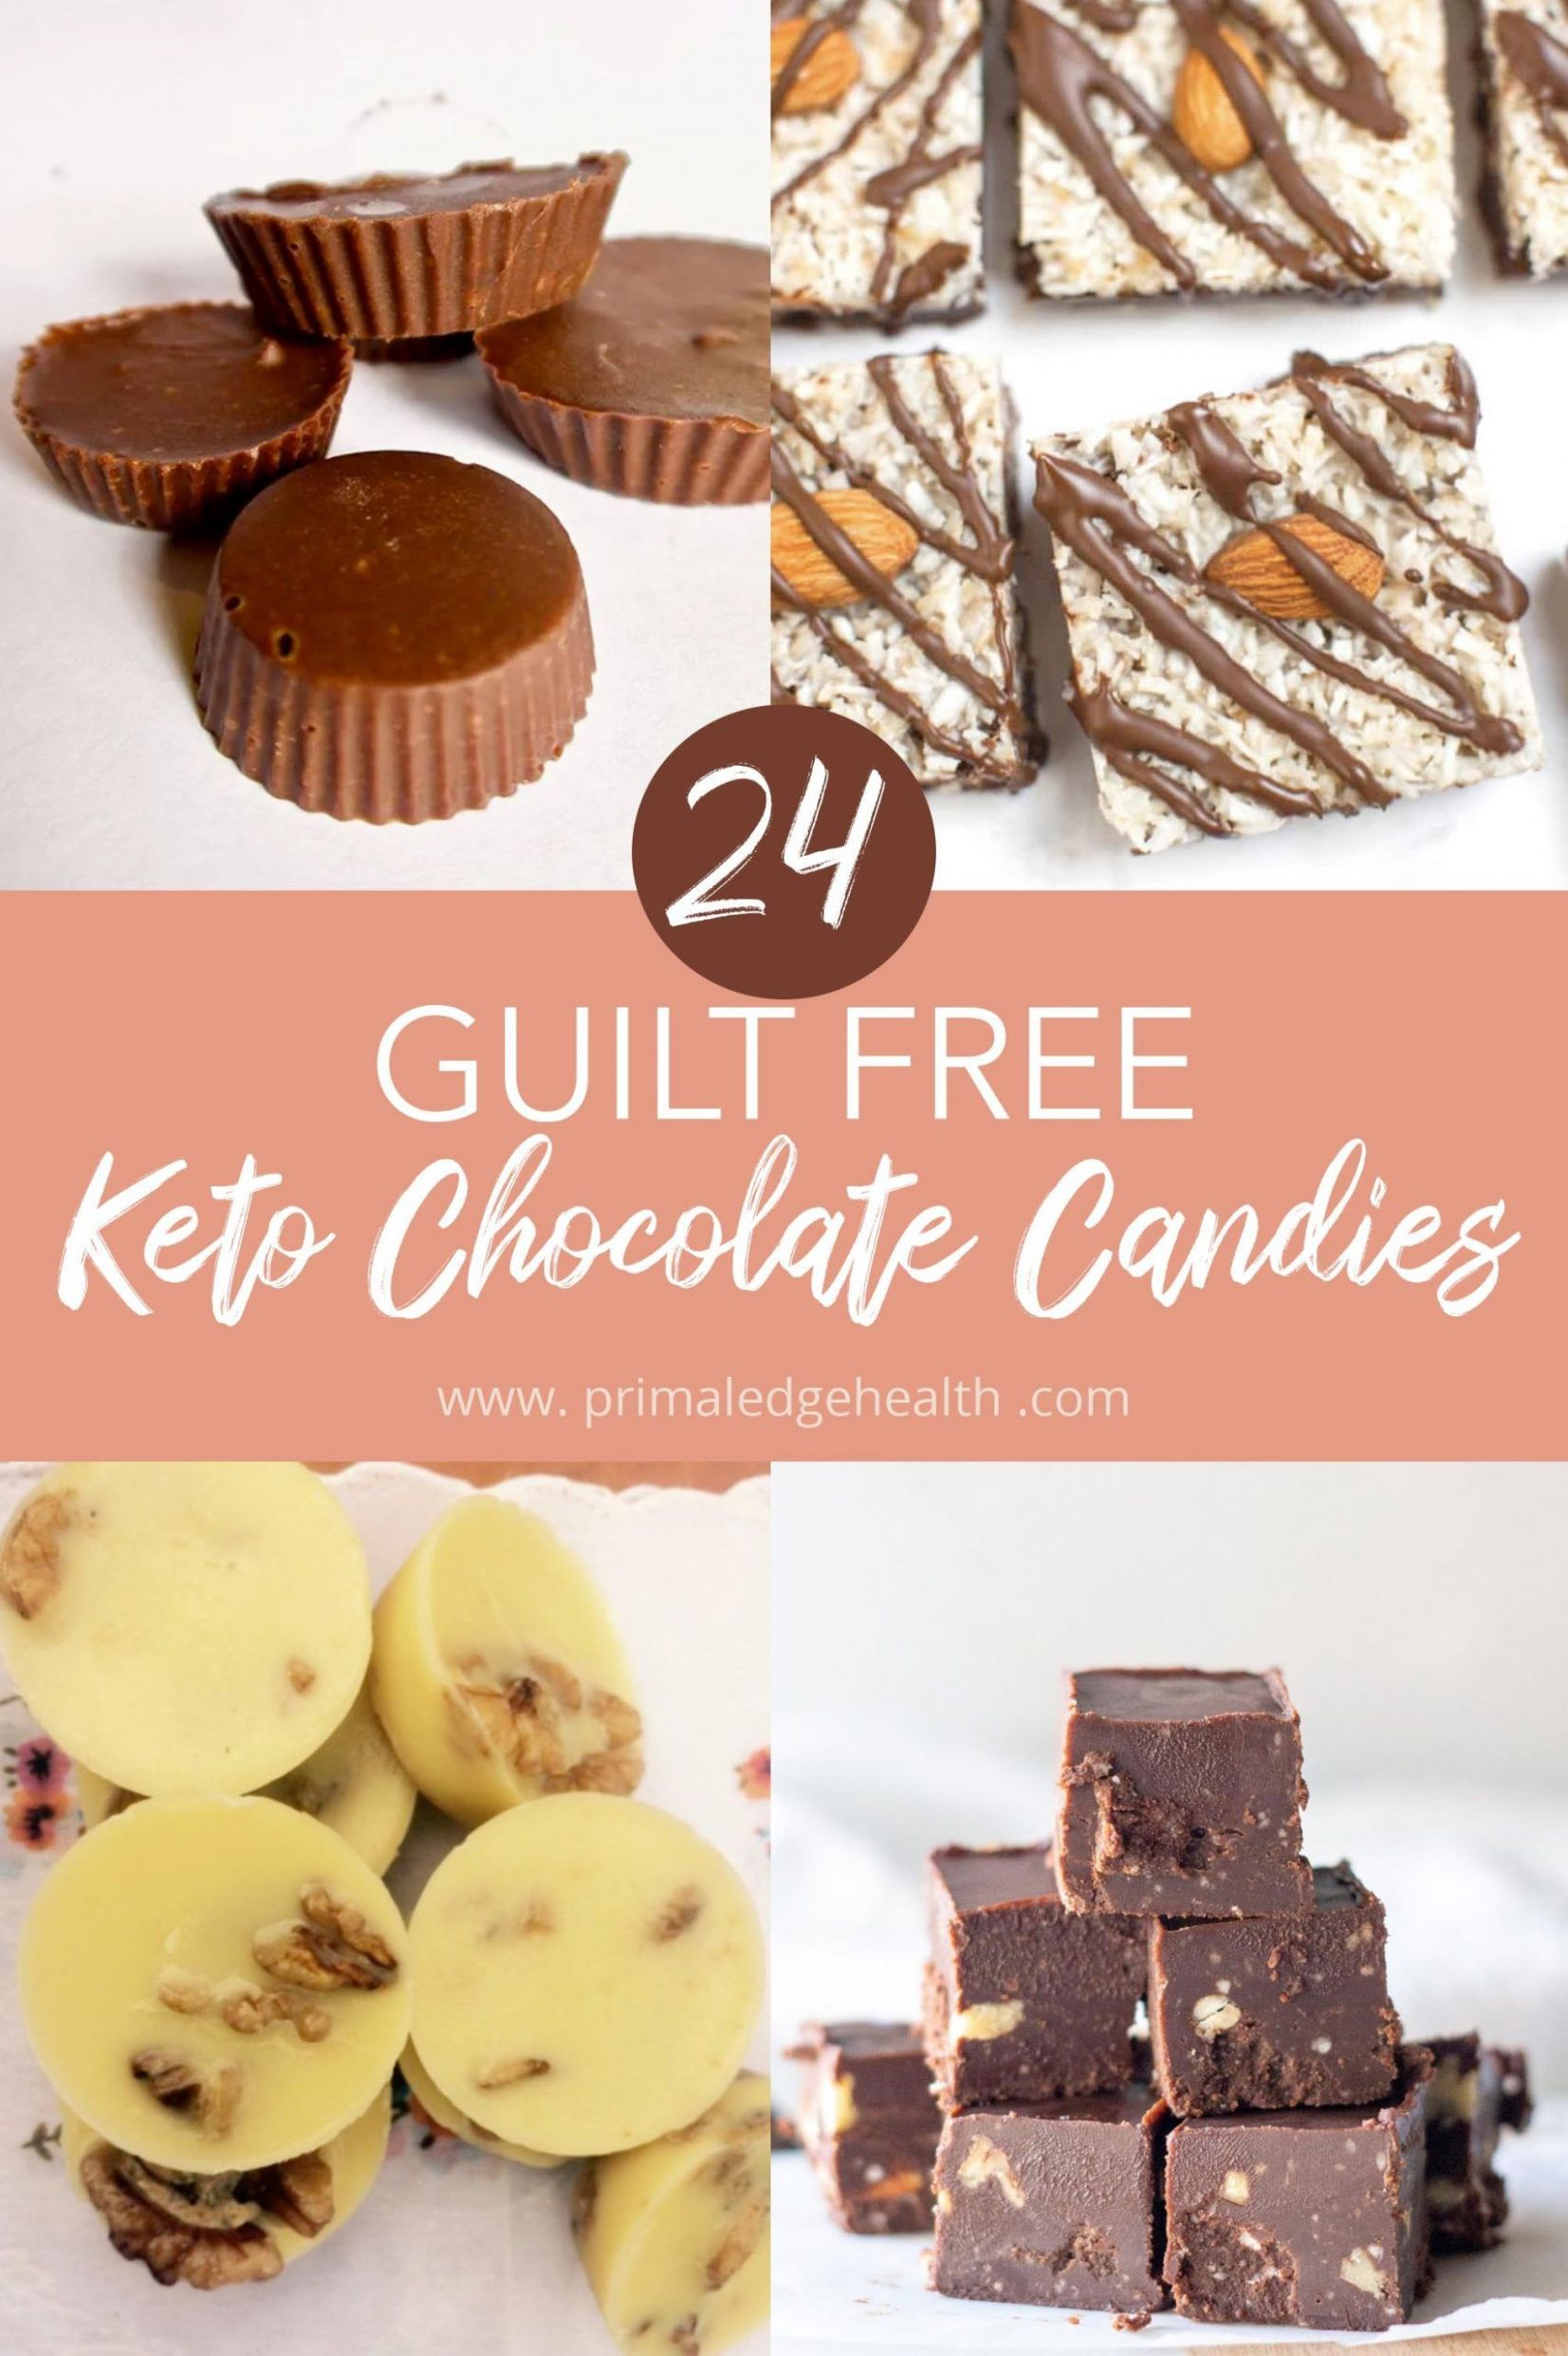 11 Guilt-Free Keto Chocolate Recipes to Enjoy | Keto chocolate ...